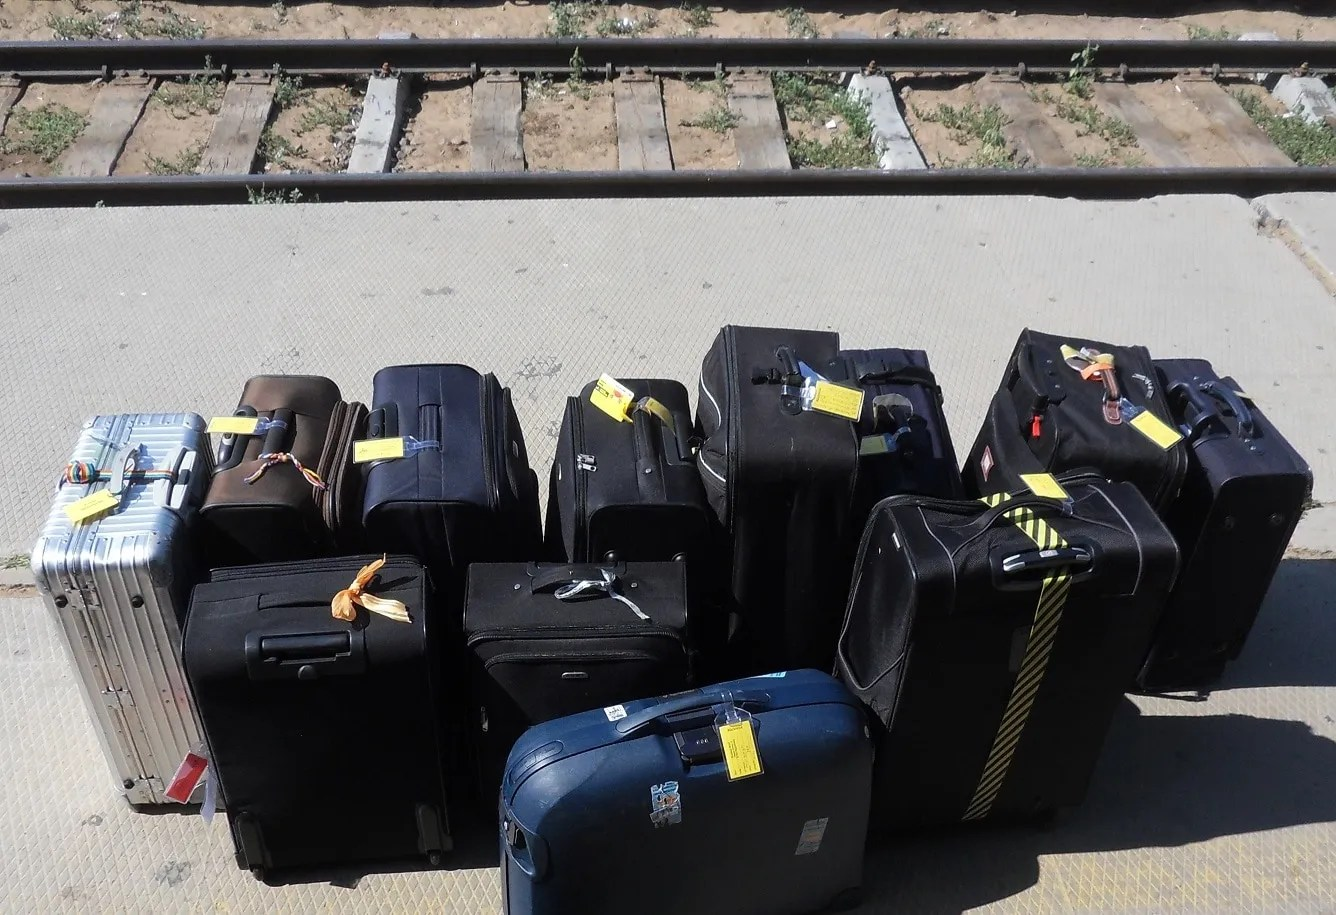 How much luggage can you take on the train?